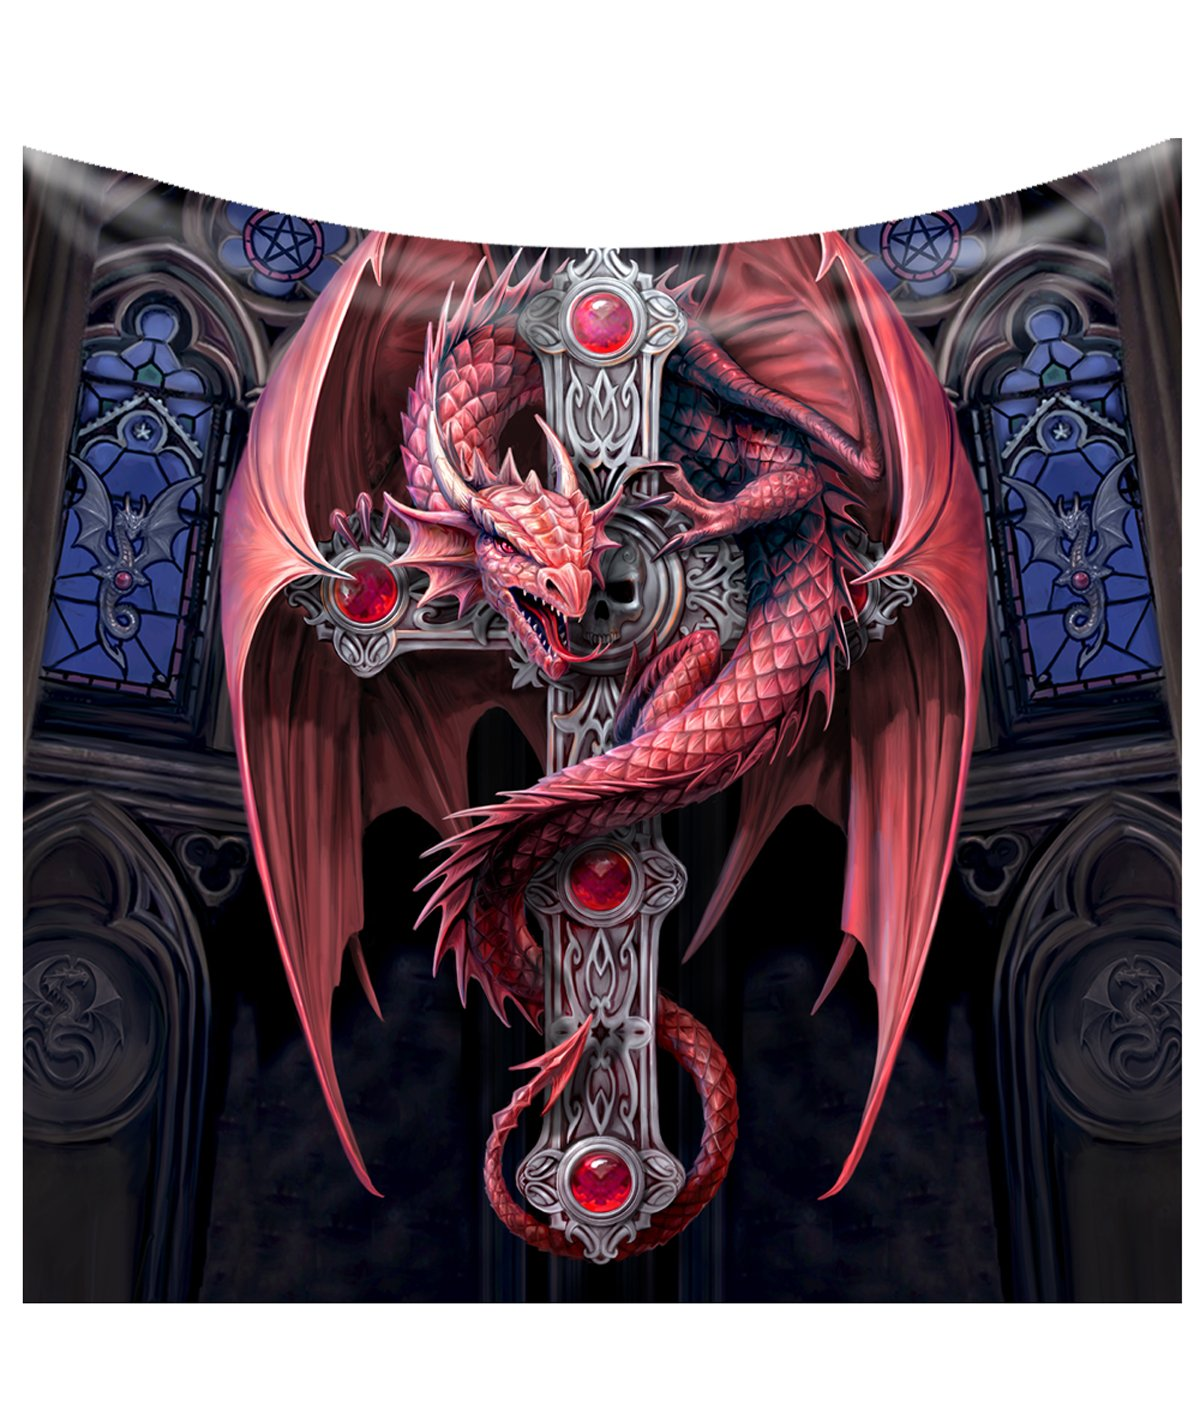 Gothic Guardian Blanket (Anne Stokes)